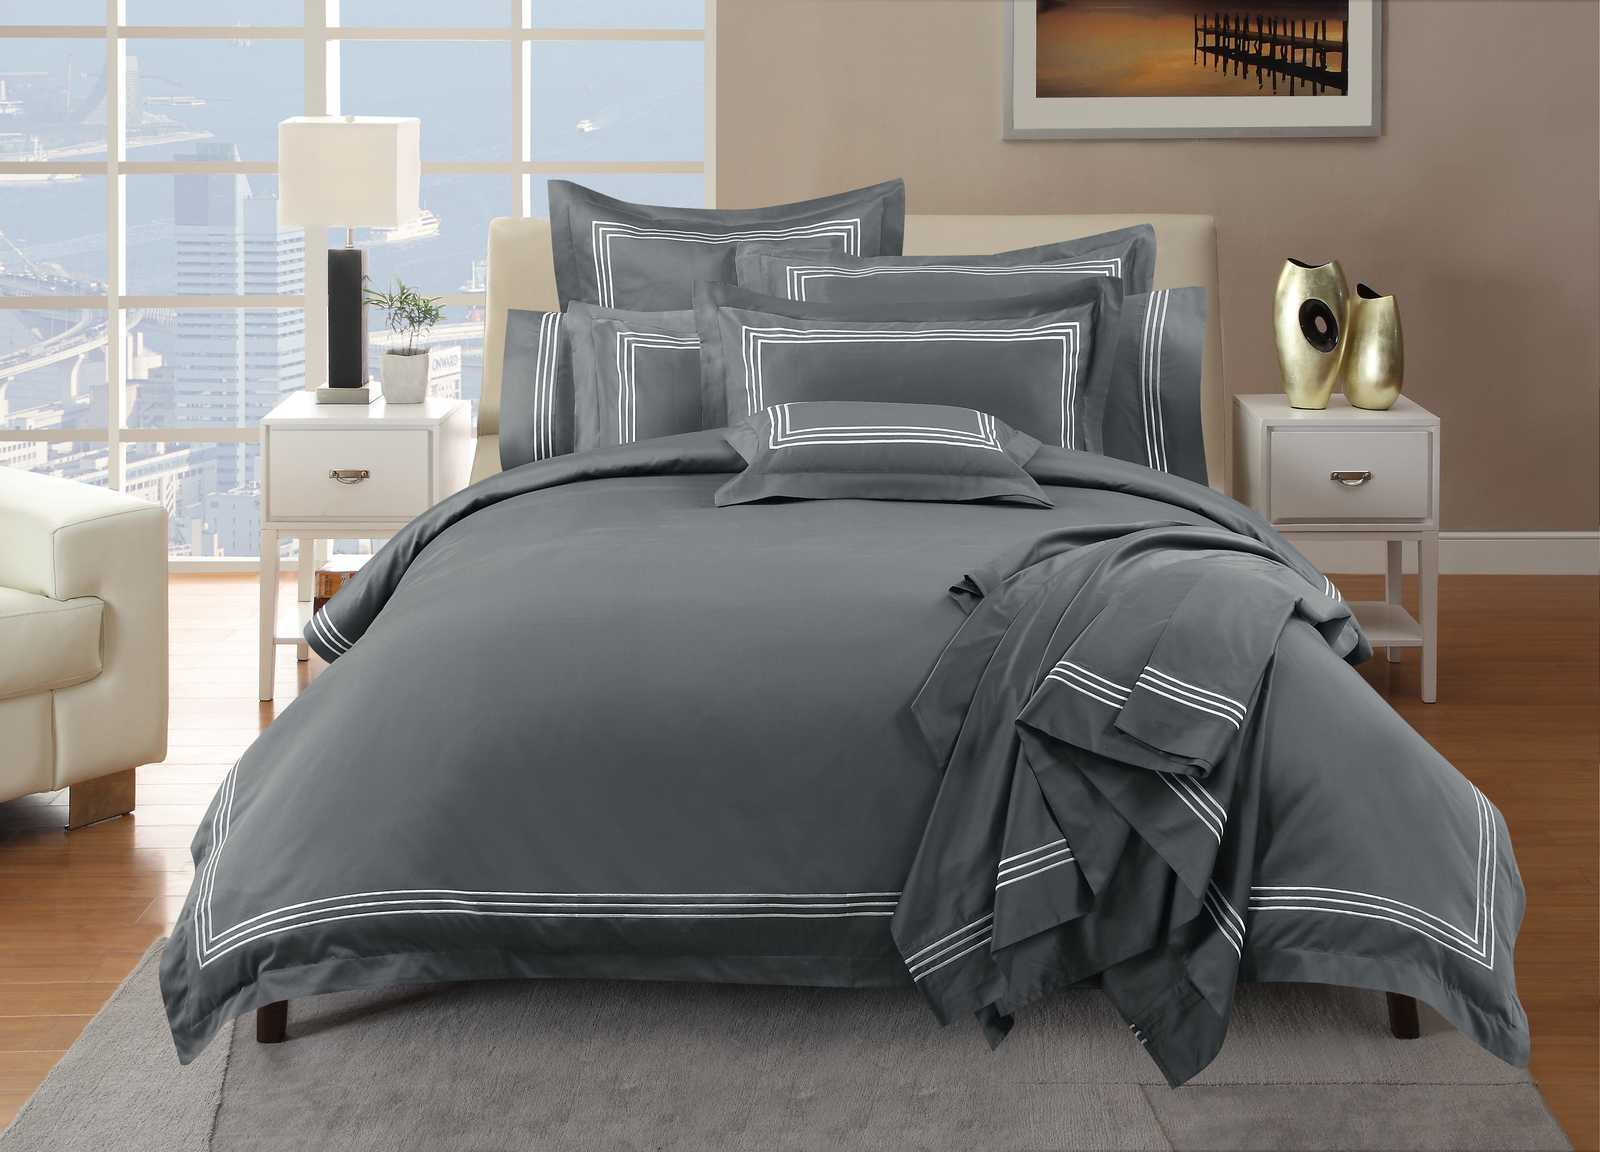 Hotel Quality - 1000TC Embroidery Line Charcoal Duvet / Quilt Cover set - Available in Queen, King, Super King and Accessories